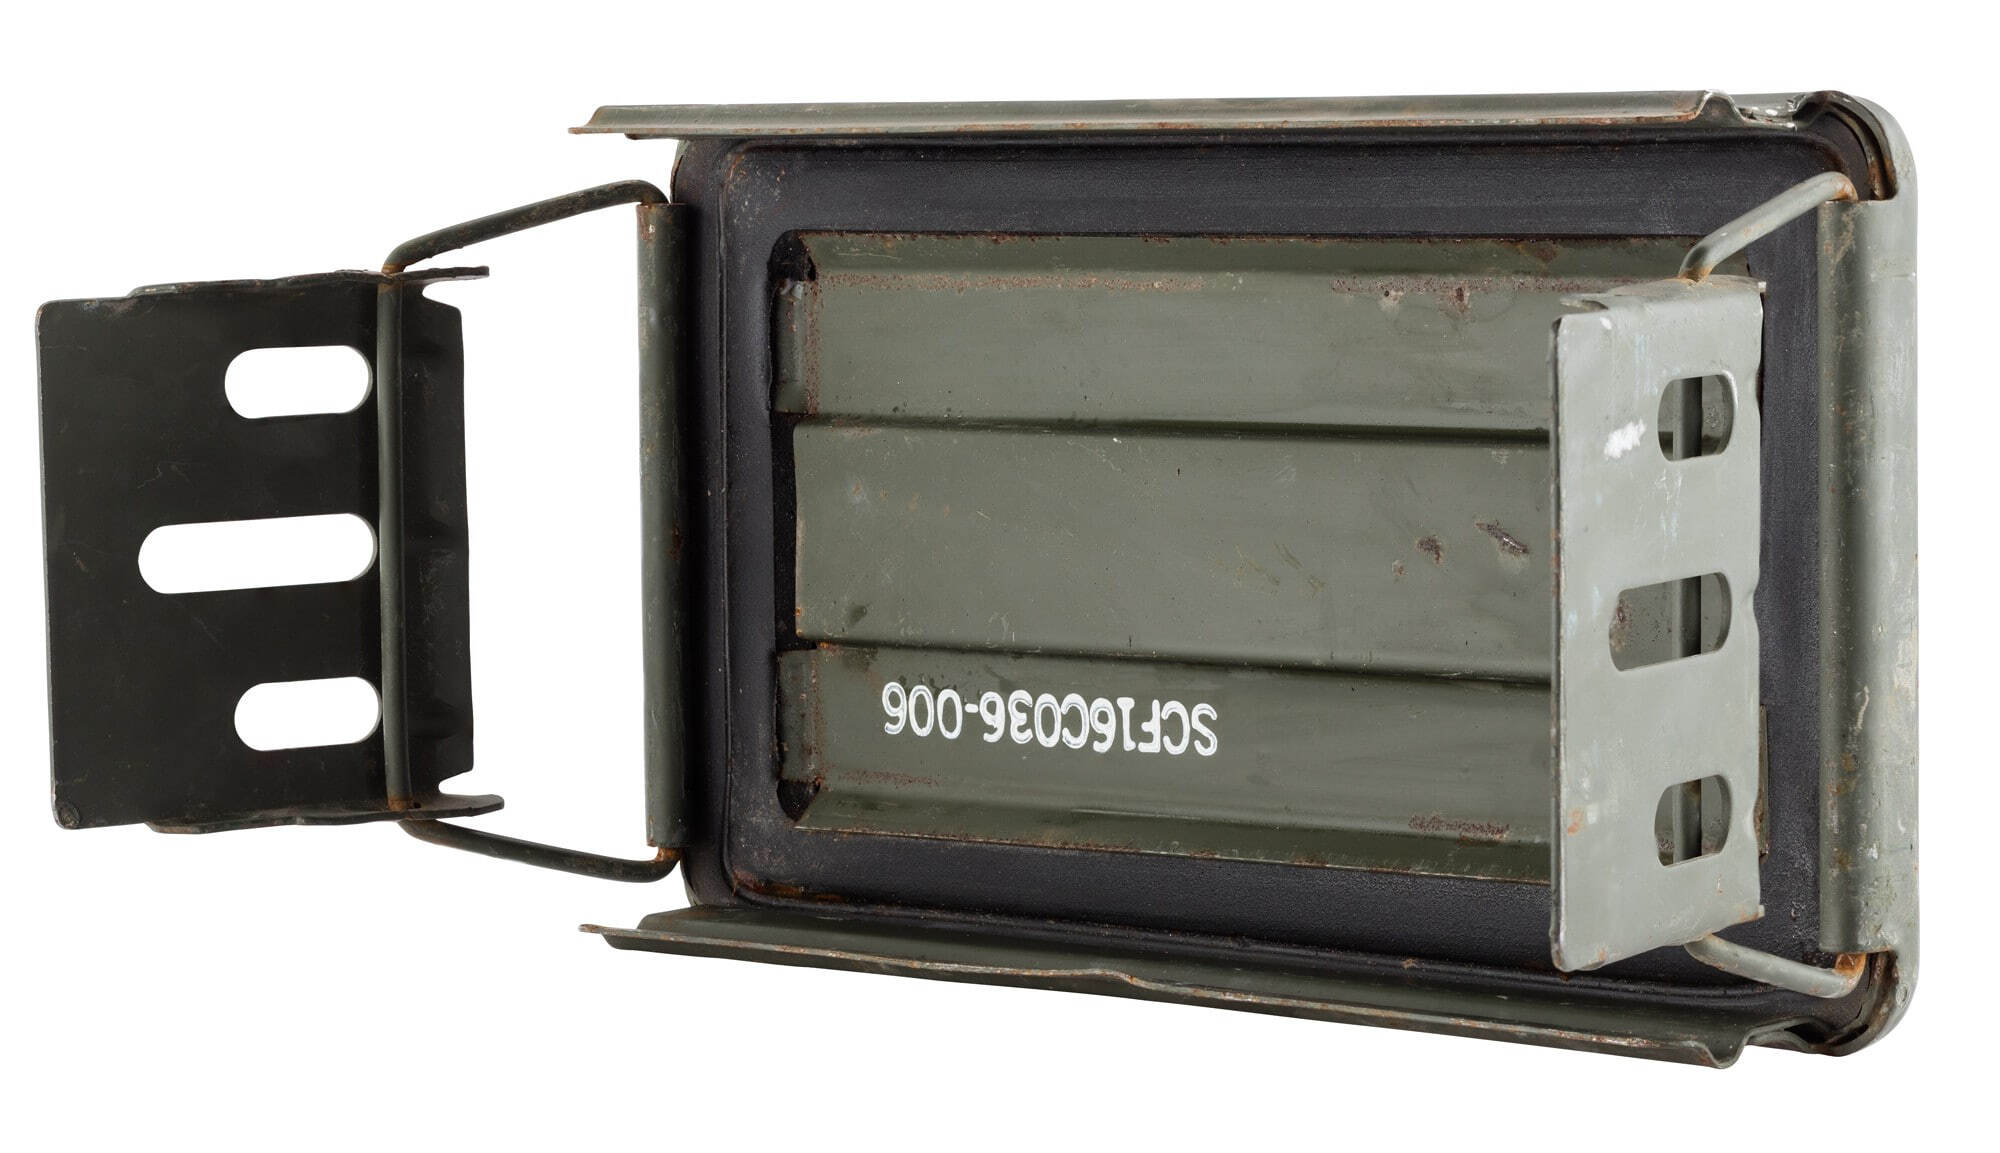 A60446-4 US 120mm used metal ammo box - A60446